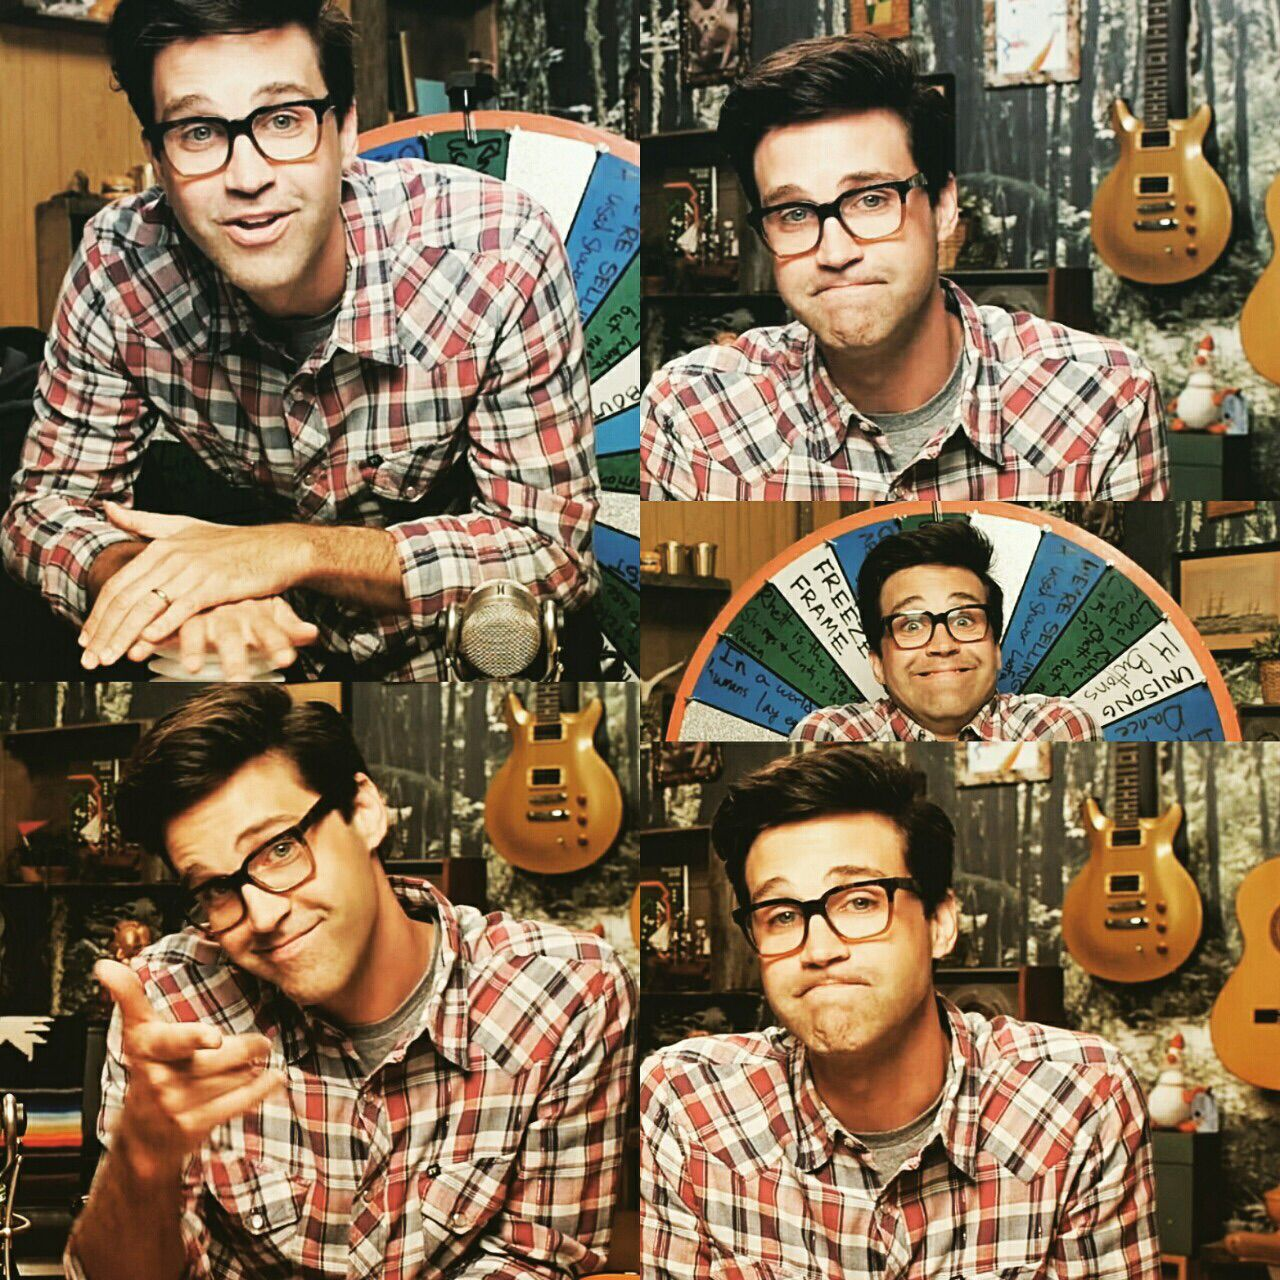 Link Neal Good Mythical Morning Tbh I Don T Like His New Hair I Miss The Wings Good Mythical Morning Rhett And Link Mythical